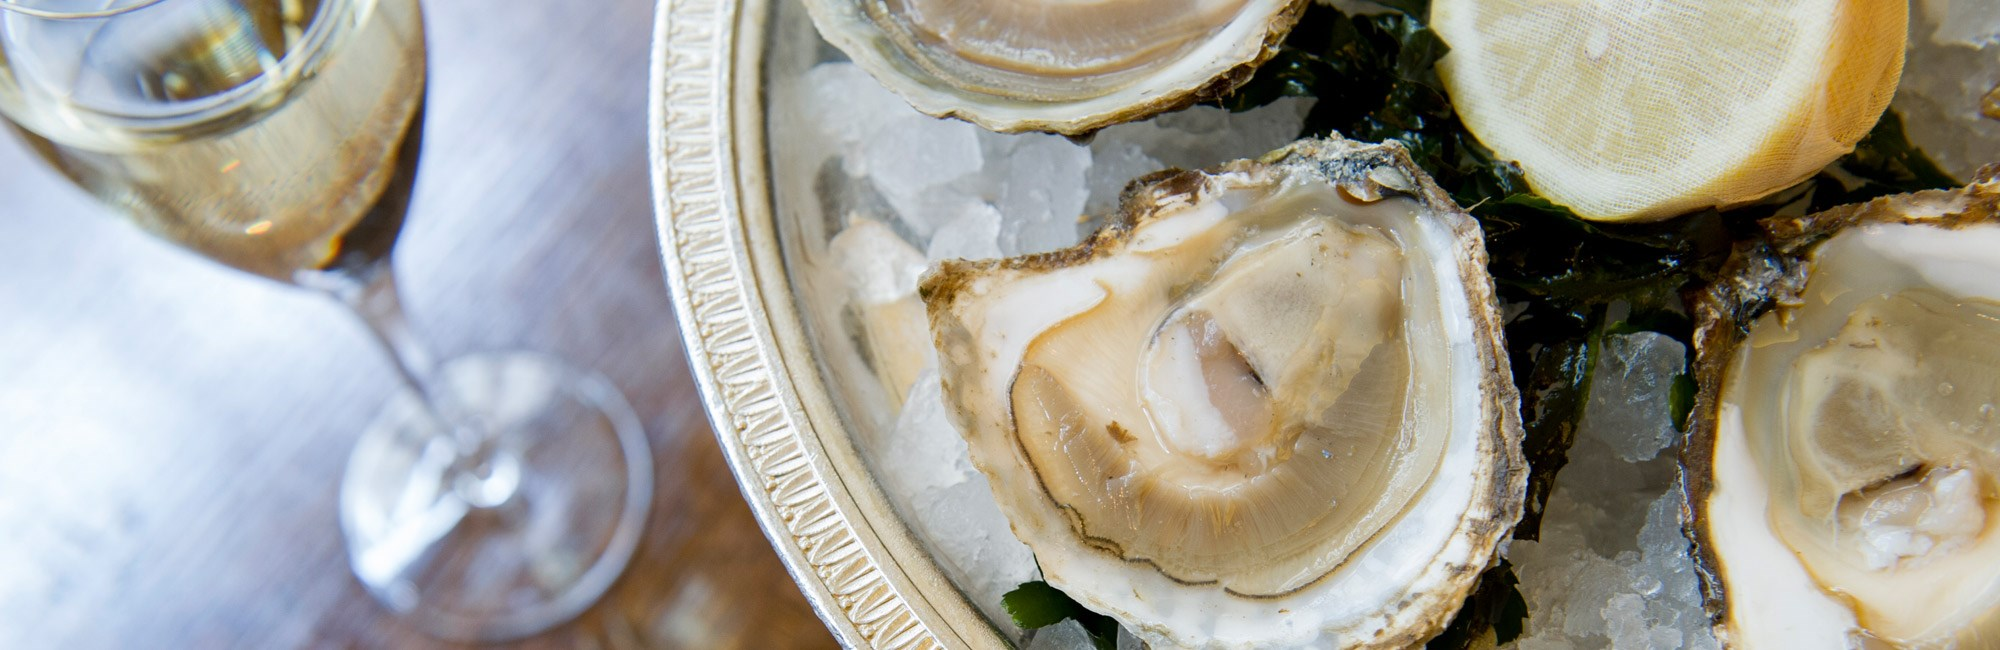 Enjoy Oyster and Champagne in London's West End at J Sheekey Atlantic Bar, Oyster Bar